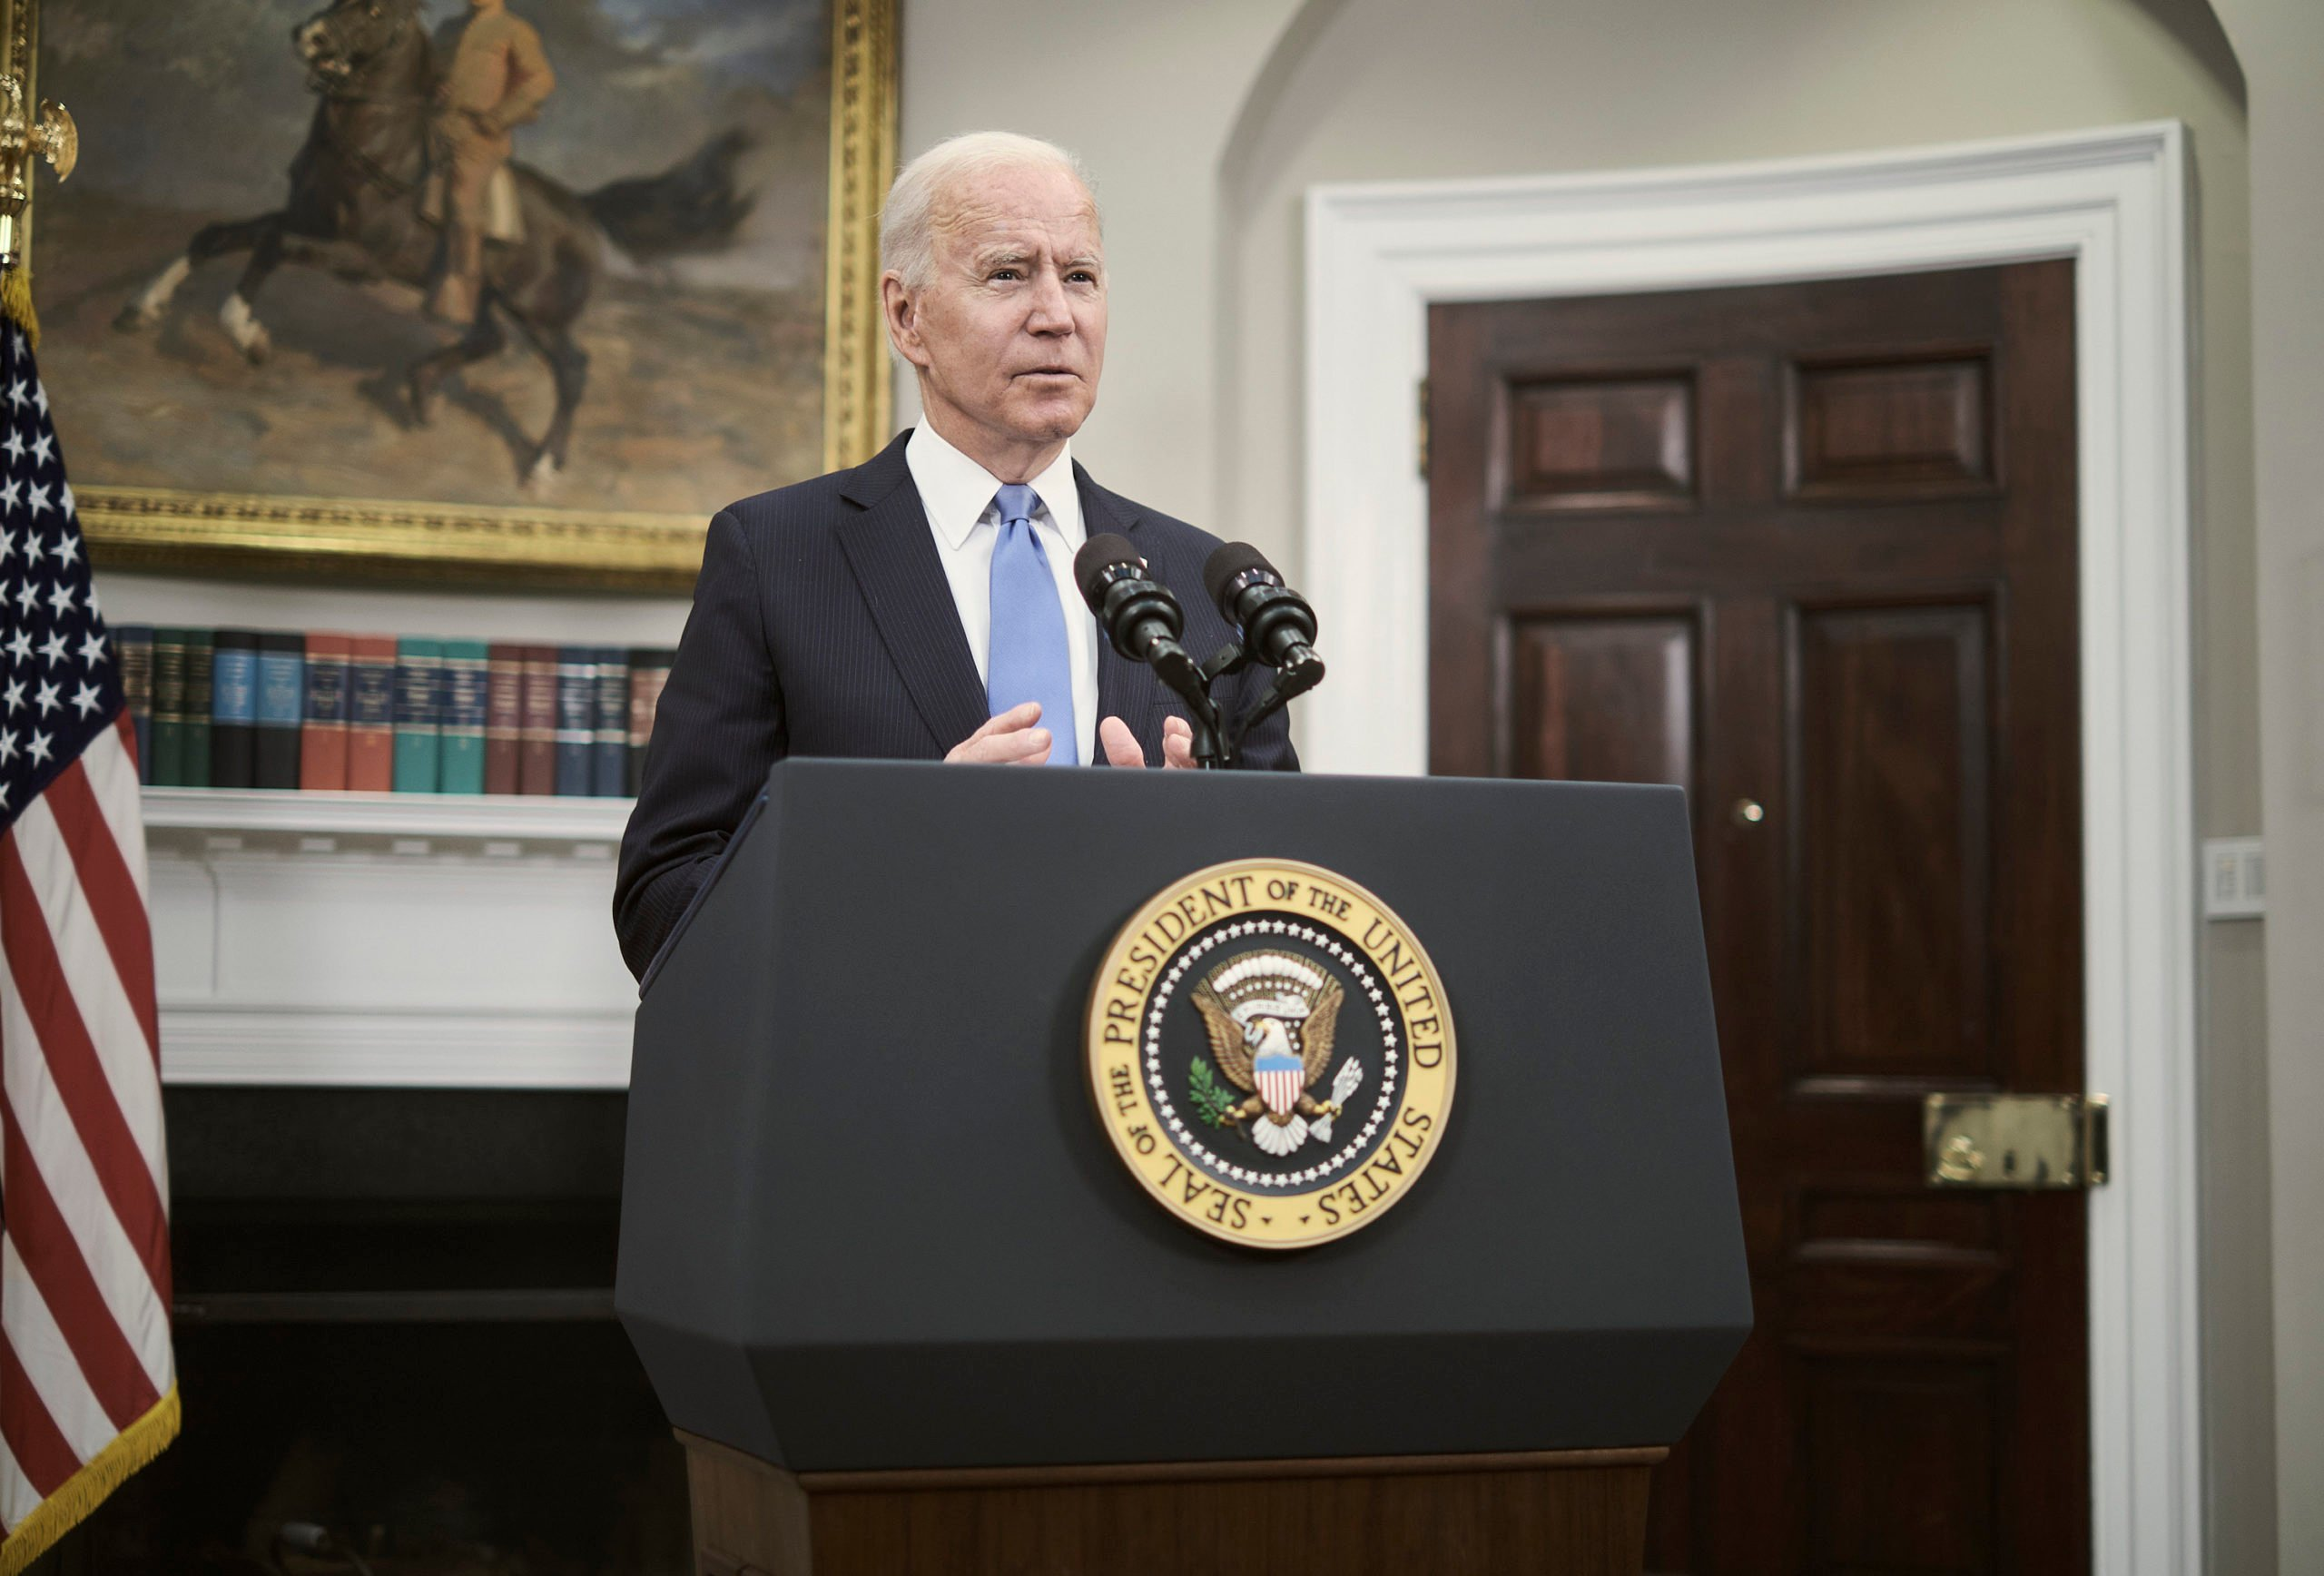 WASHINGTON, DC - MAY 13: U.S. President Joe Biden delivers remarks on the Colonial Pipeline incident in the Roosevelt Room of the White House May 13, 2021 in Washington, DC. President Biden said his administration doesn't believe the Russian government was behind the pipeline attack and the fuel shortages should end by this weekend or next week. (Photo by T.J. Kirkpatrick-Pool/Getty Images)